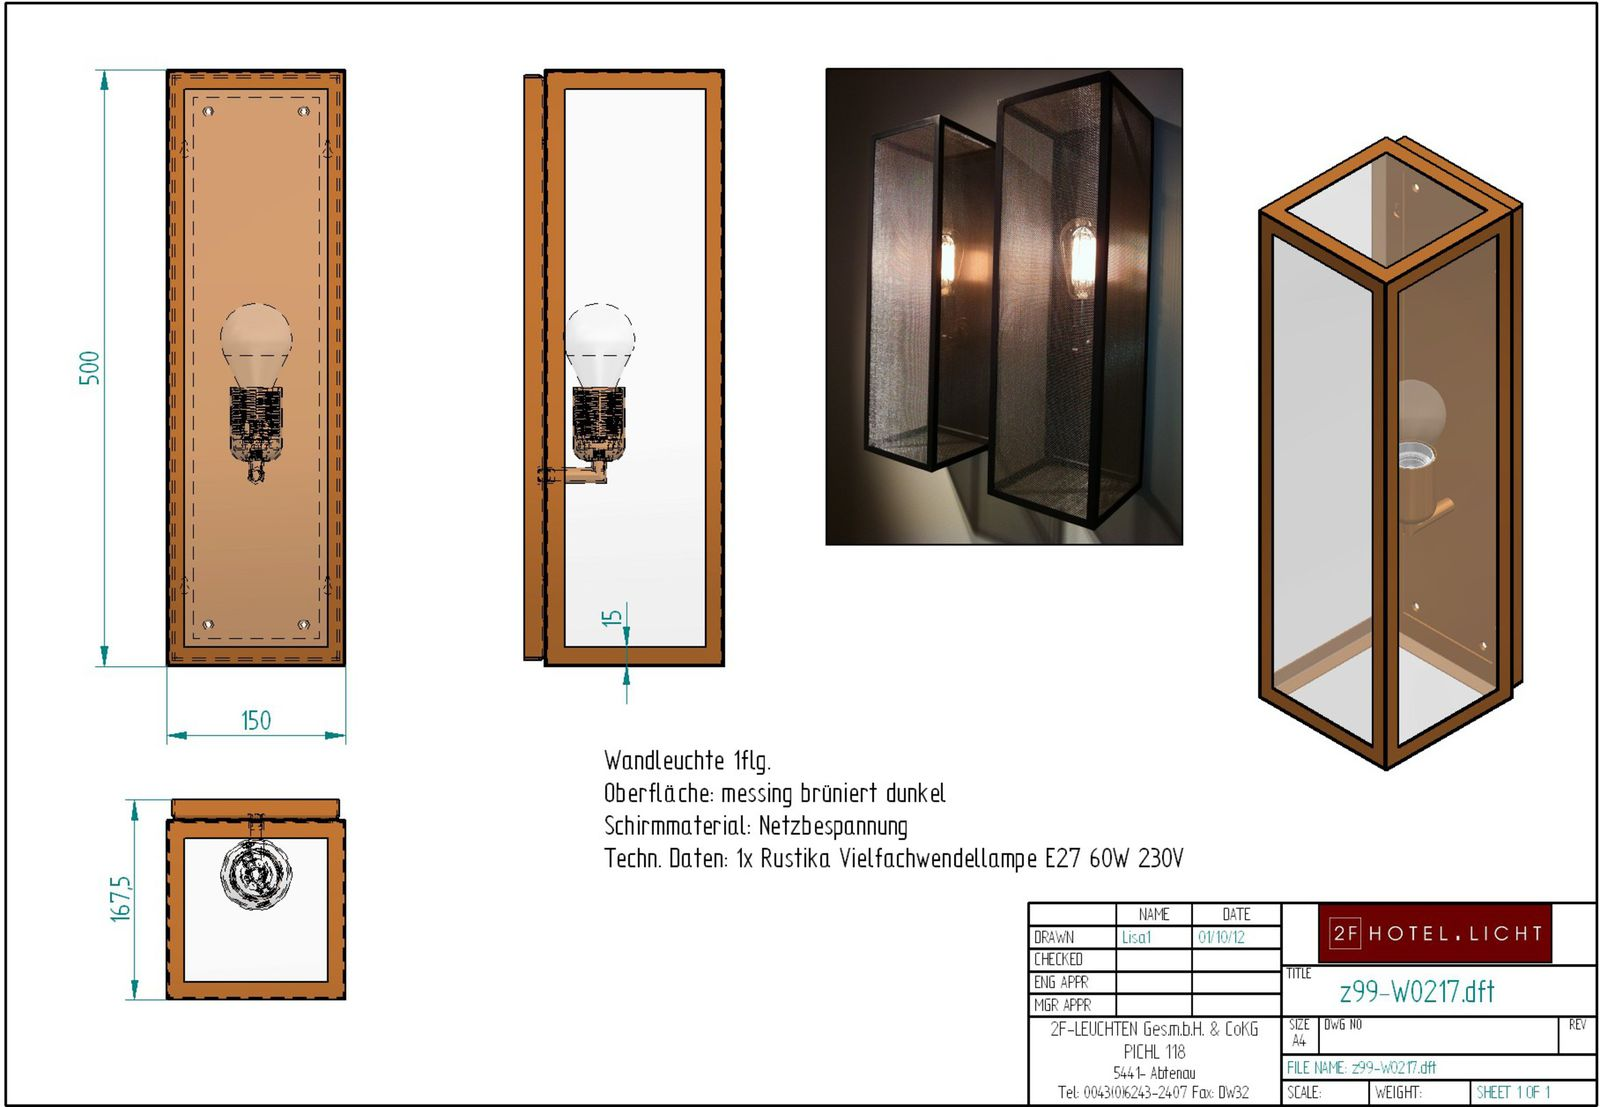 wall lamp, lenght=167mm, wide=150mm, height=500mm, surface: dark bronzed brass, techn. details: 1xE27, 60W